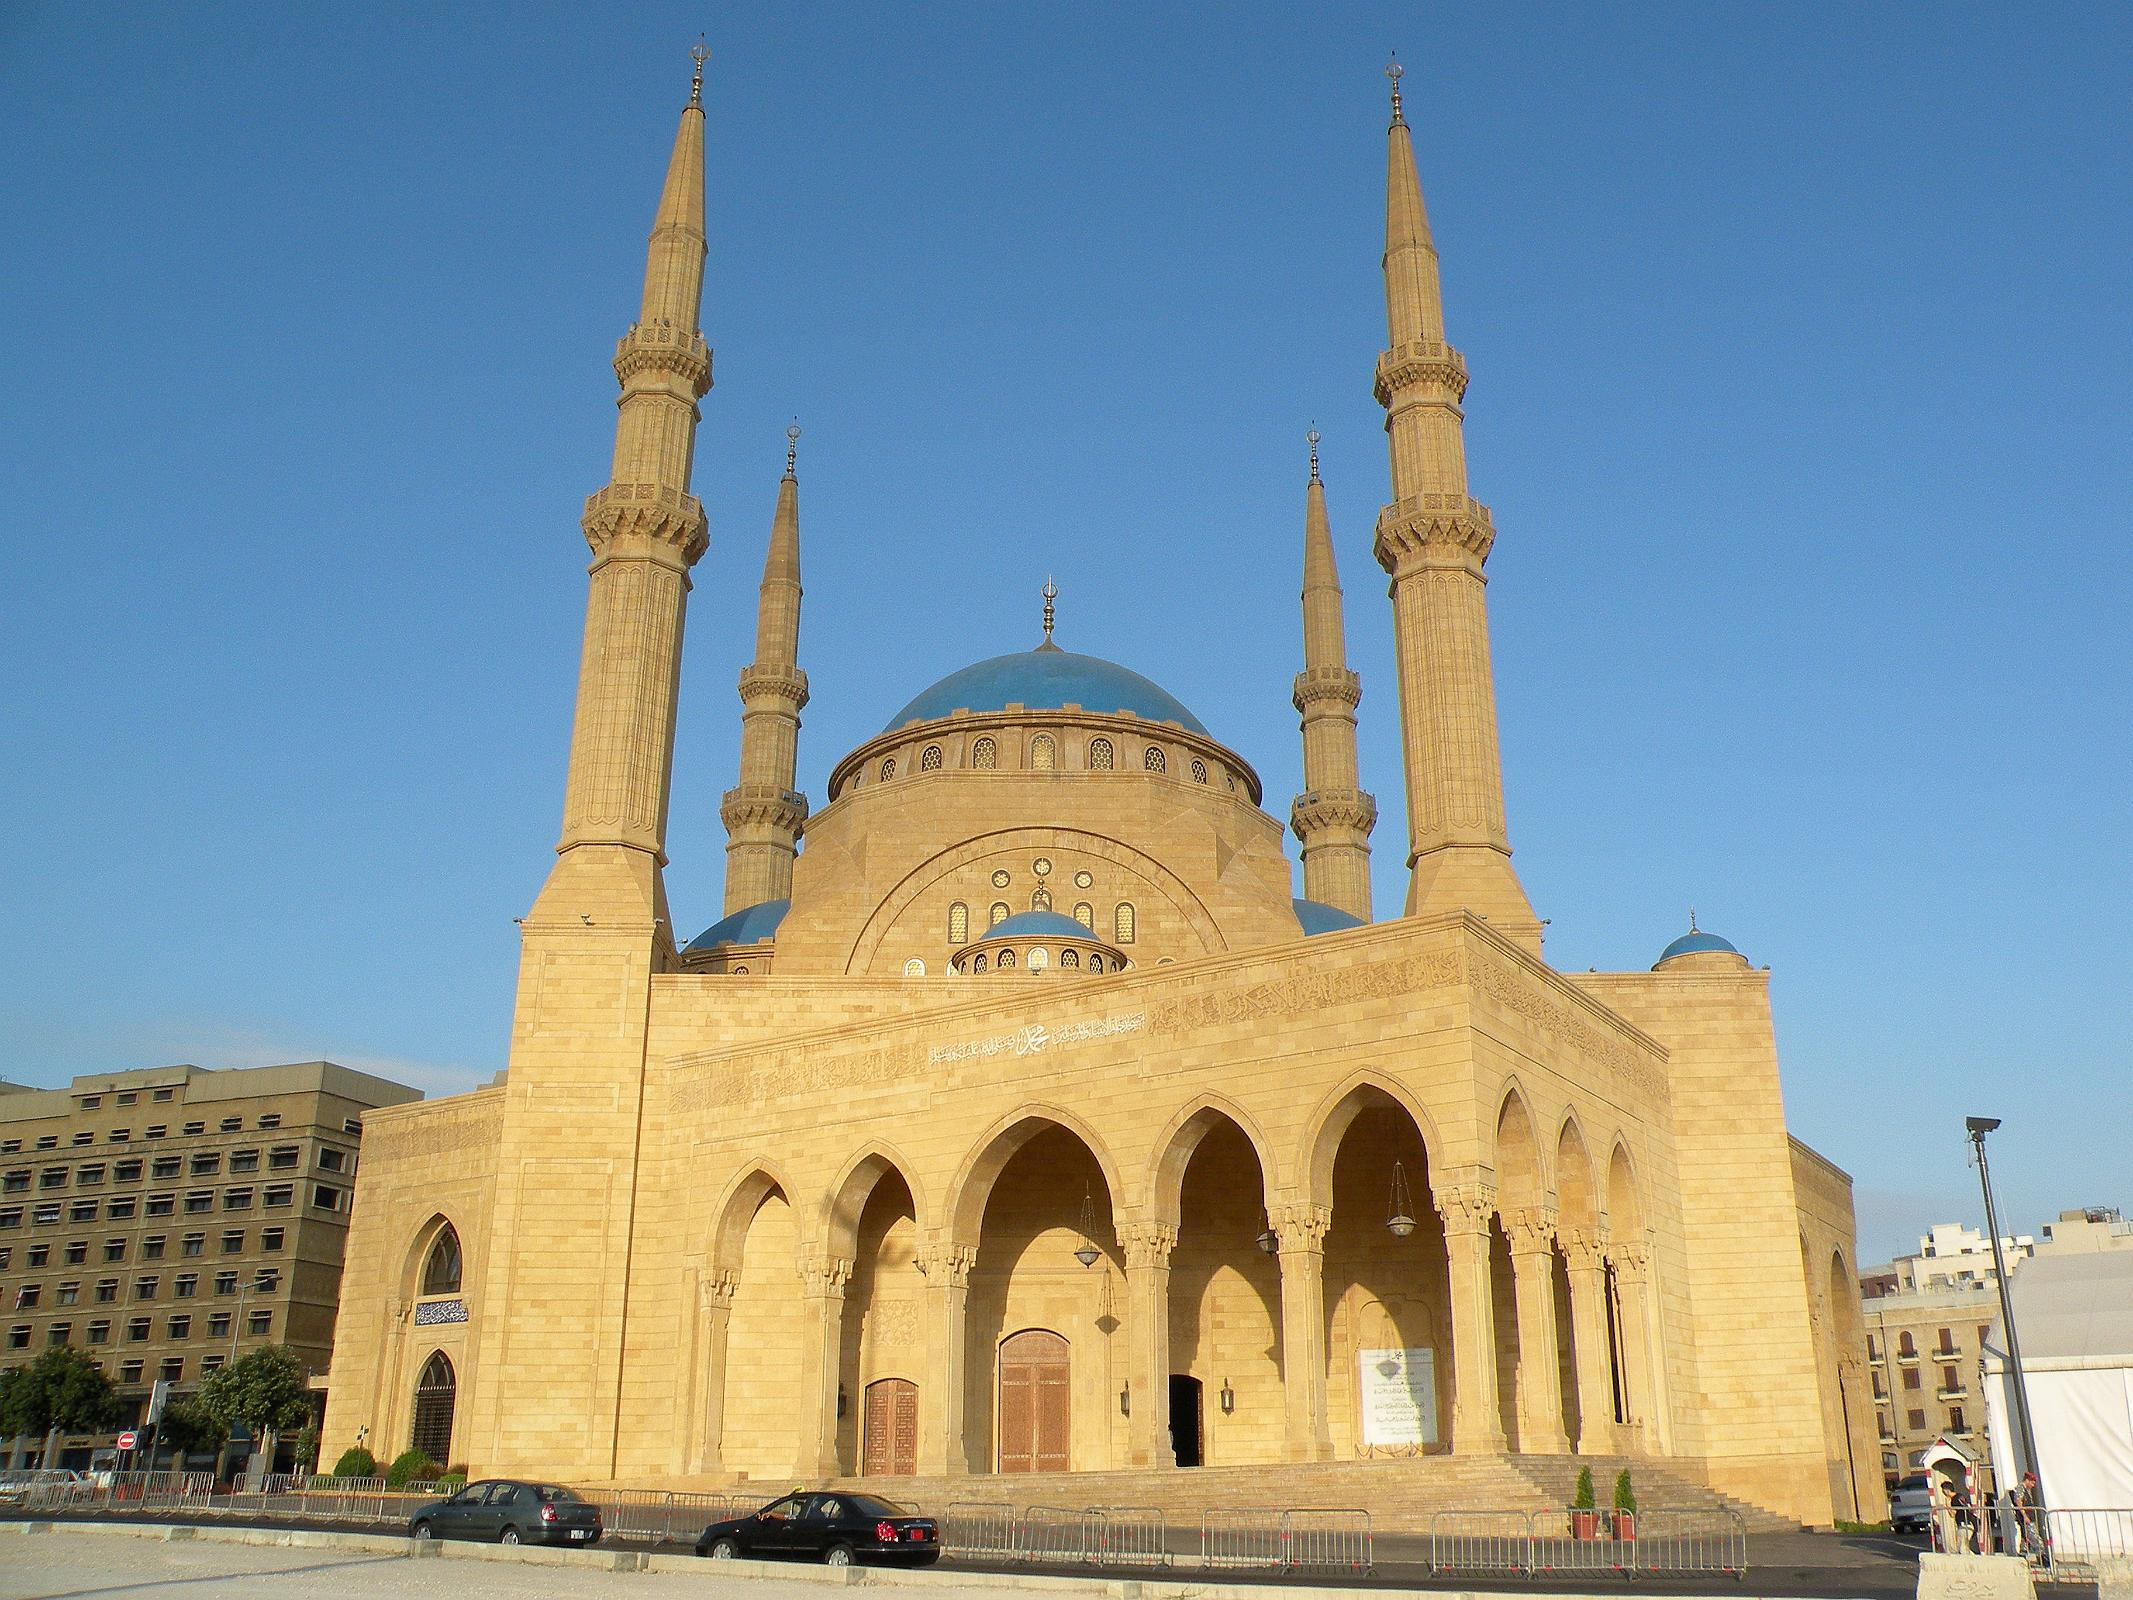 Mohammed Al Amin Mosque Beirut, 08 Mohammed Al-Amin Mosque Outside